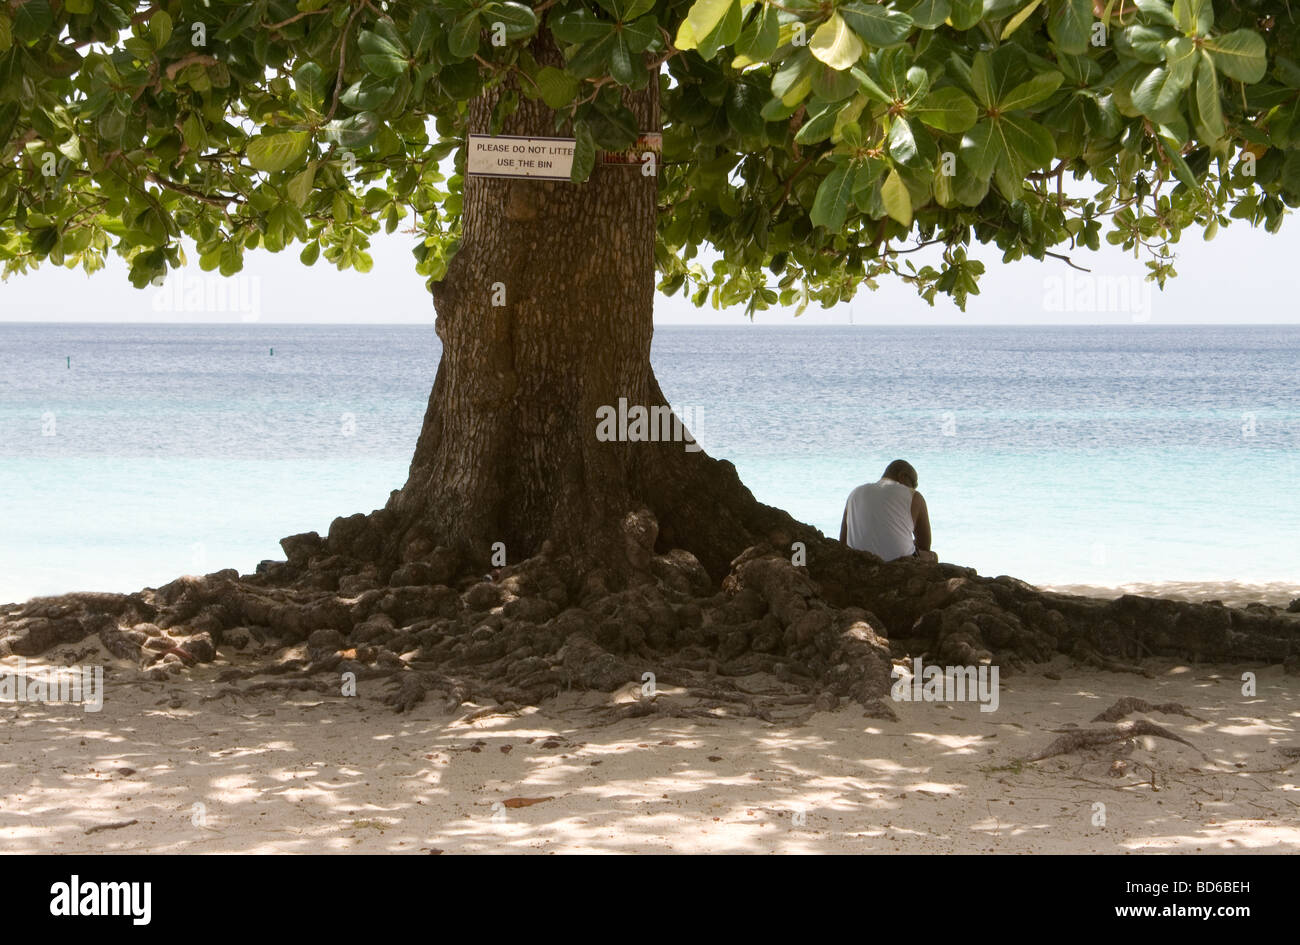 Lone Figure Chilling Out Under the Shade of a Large Tree on